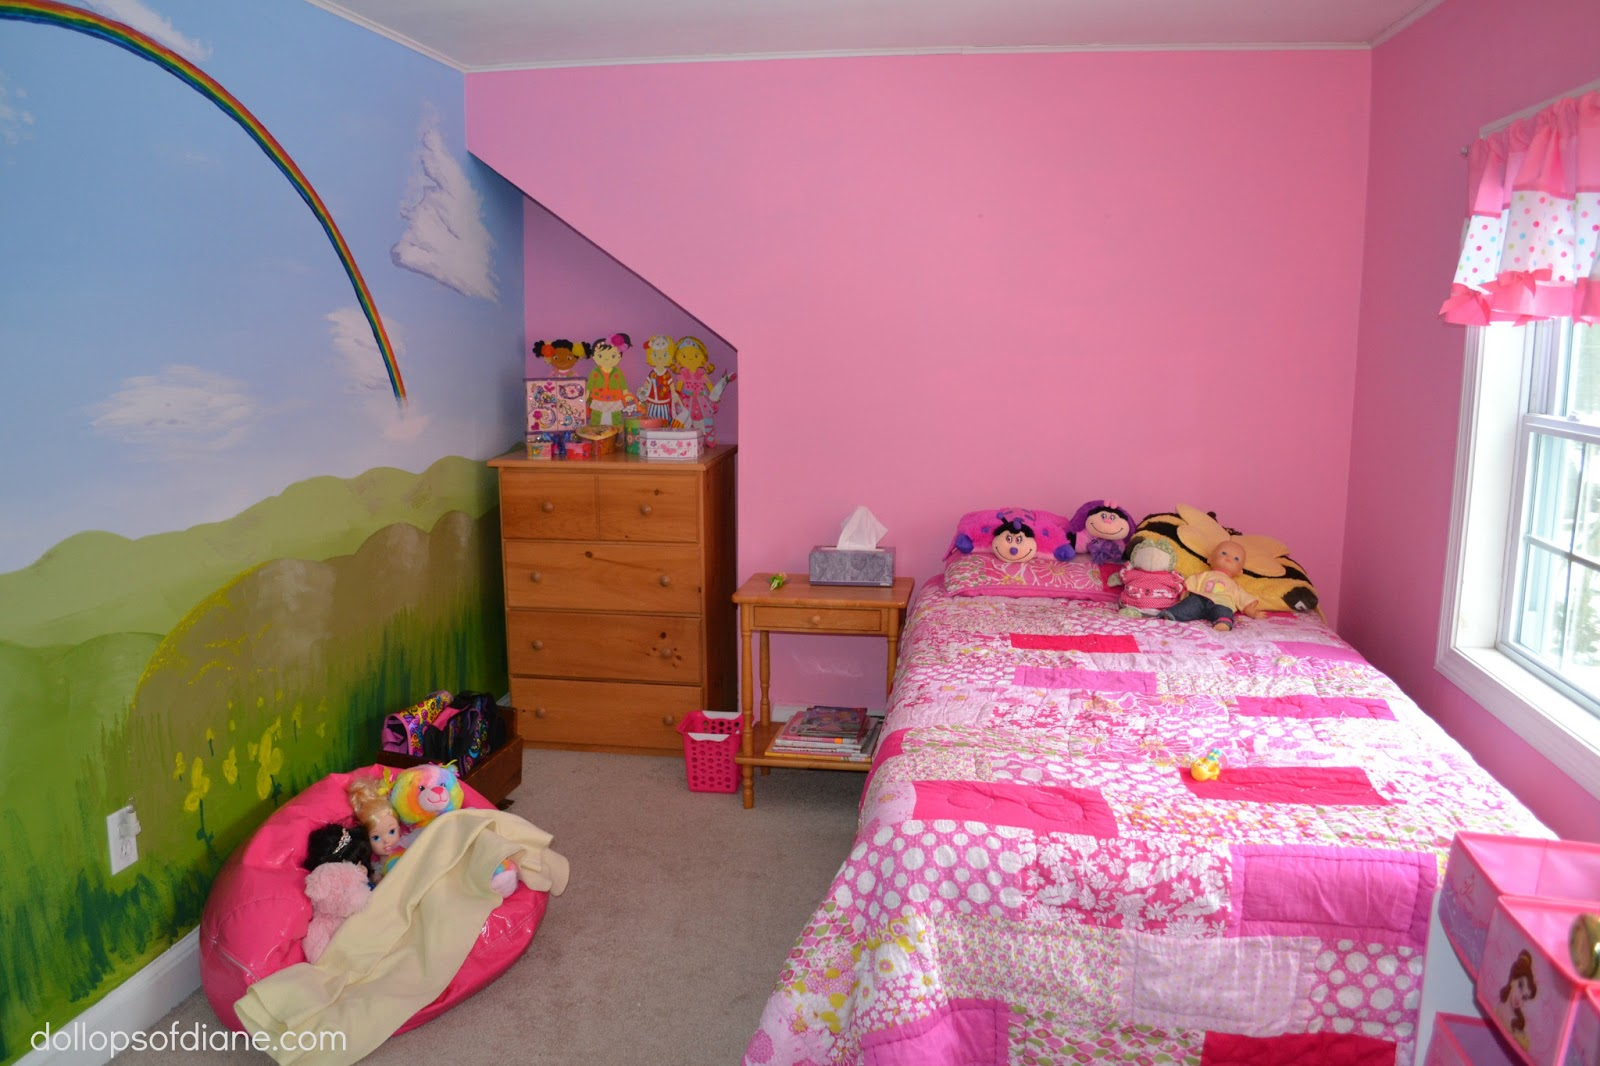 Dollops of diane the perfect room for a five year old girl for Room decor for 5 year old boy